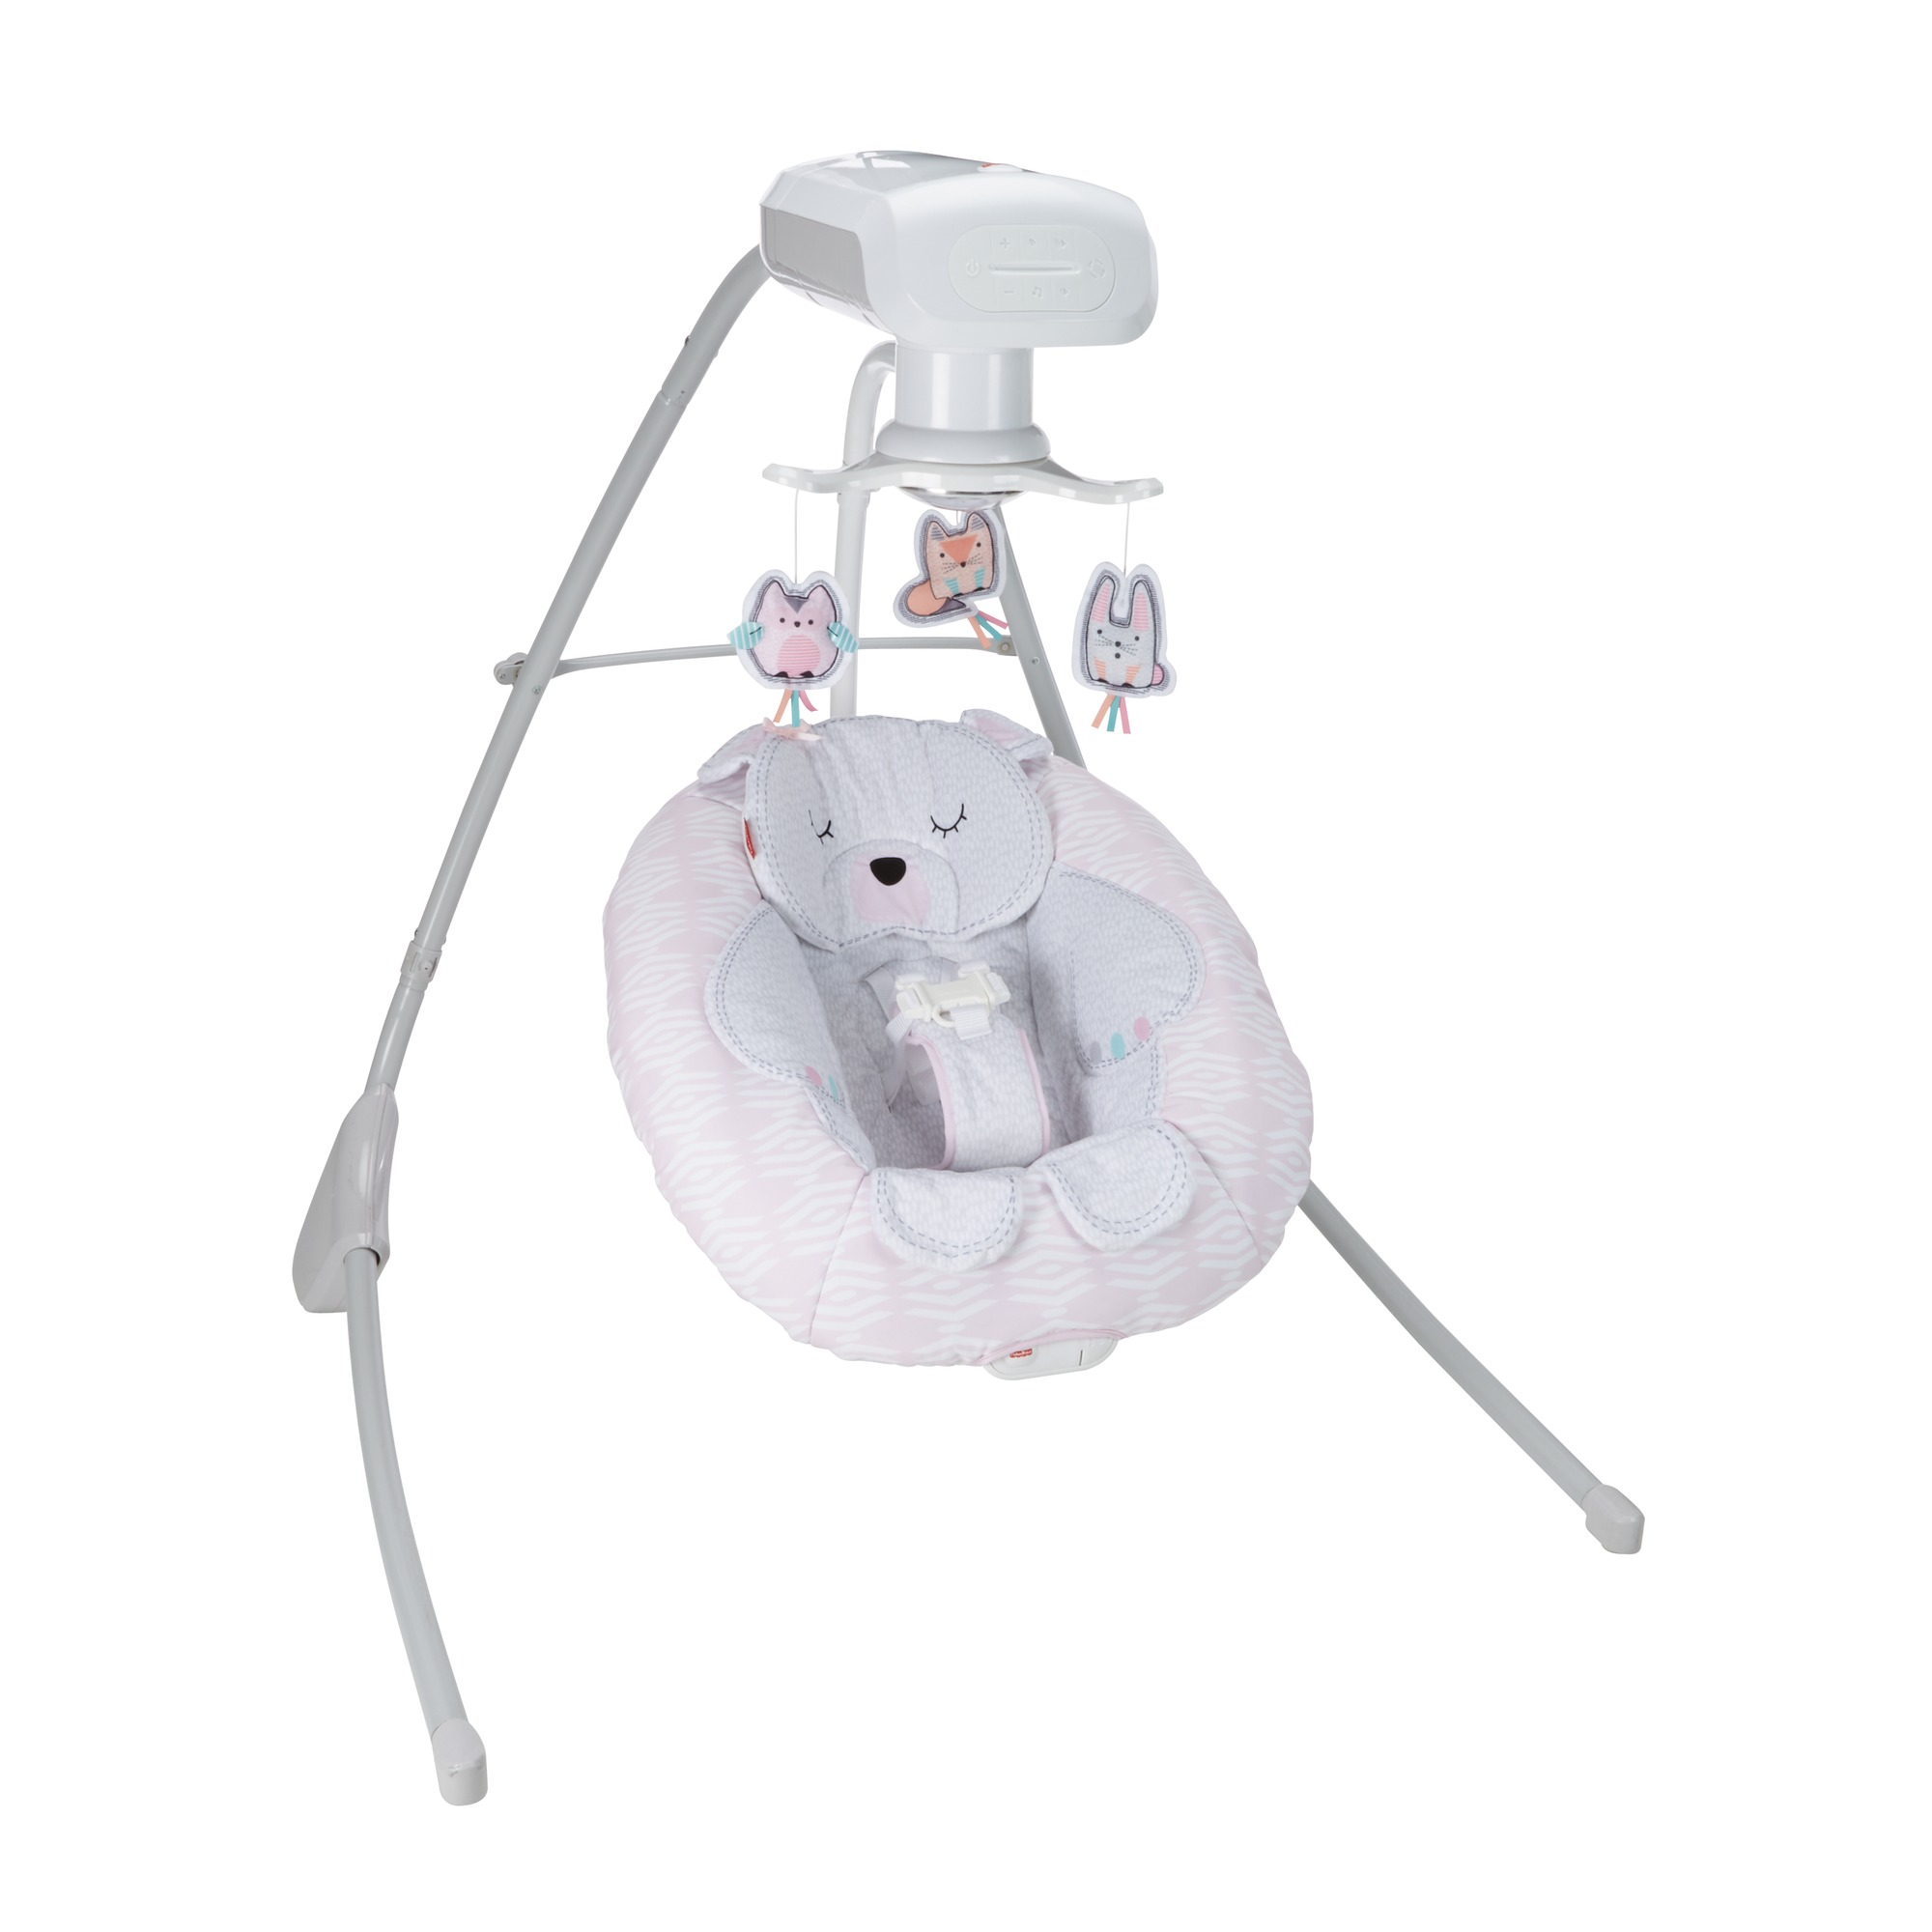 Fisher Price Cradle 'n Swing with 6-Speeds, Snugabear Sweetie by Fisher-Price